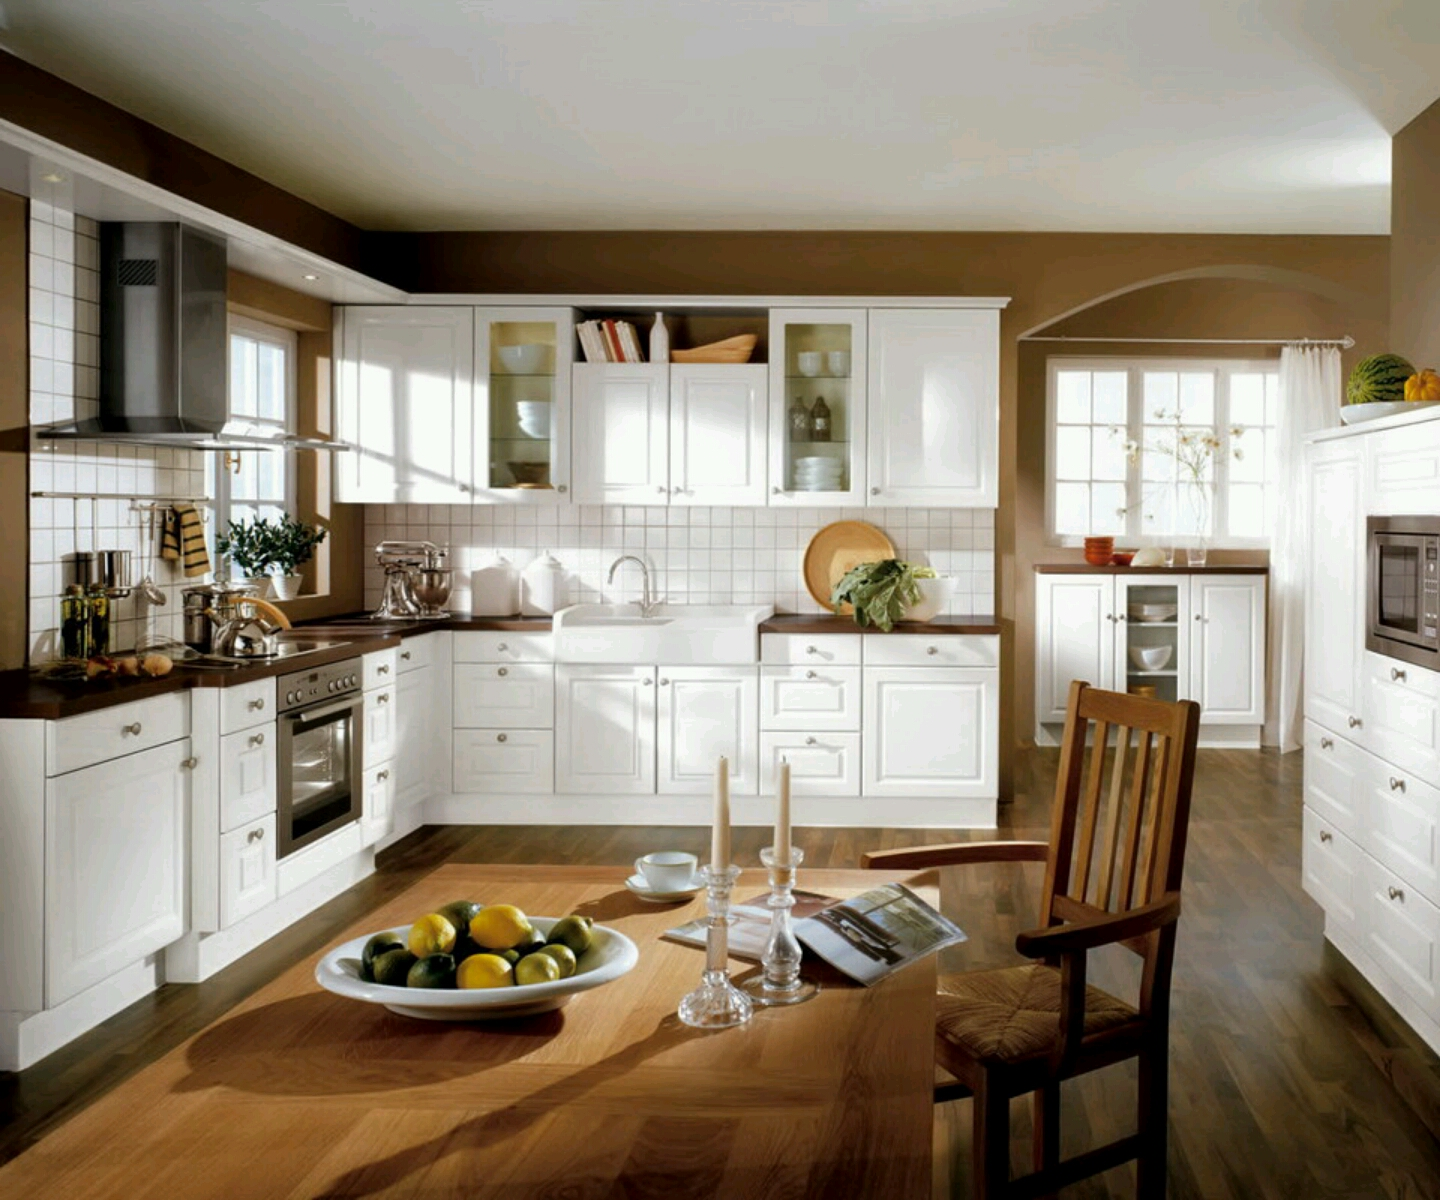 20 modern kitchen design ideas for 2012 pictures long for New home kitchen design ideas